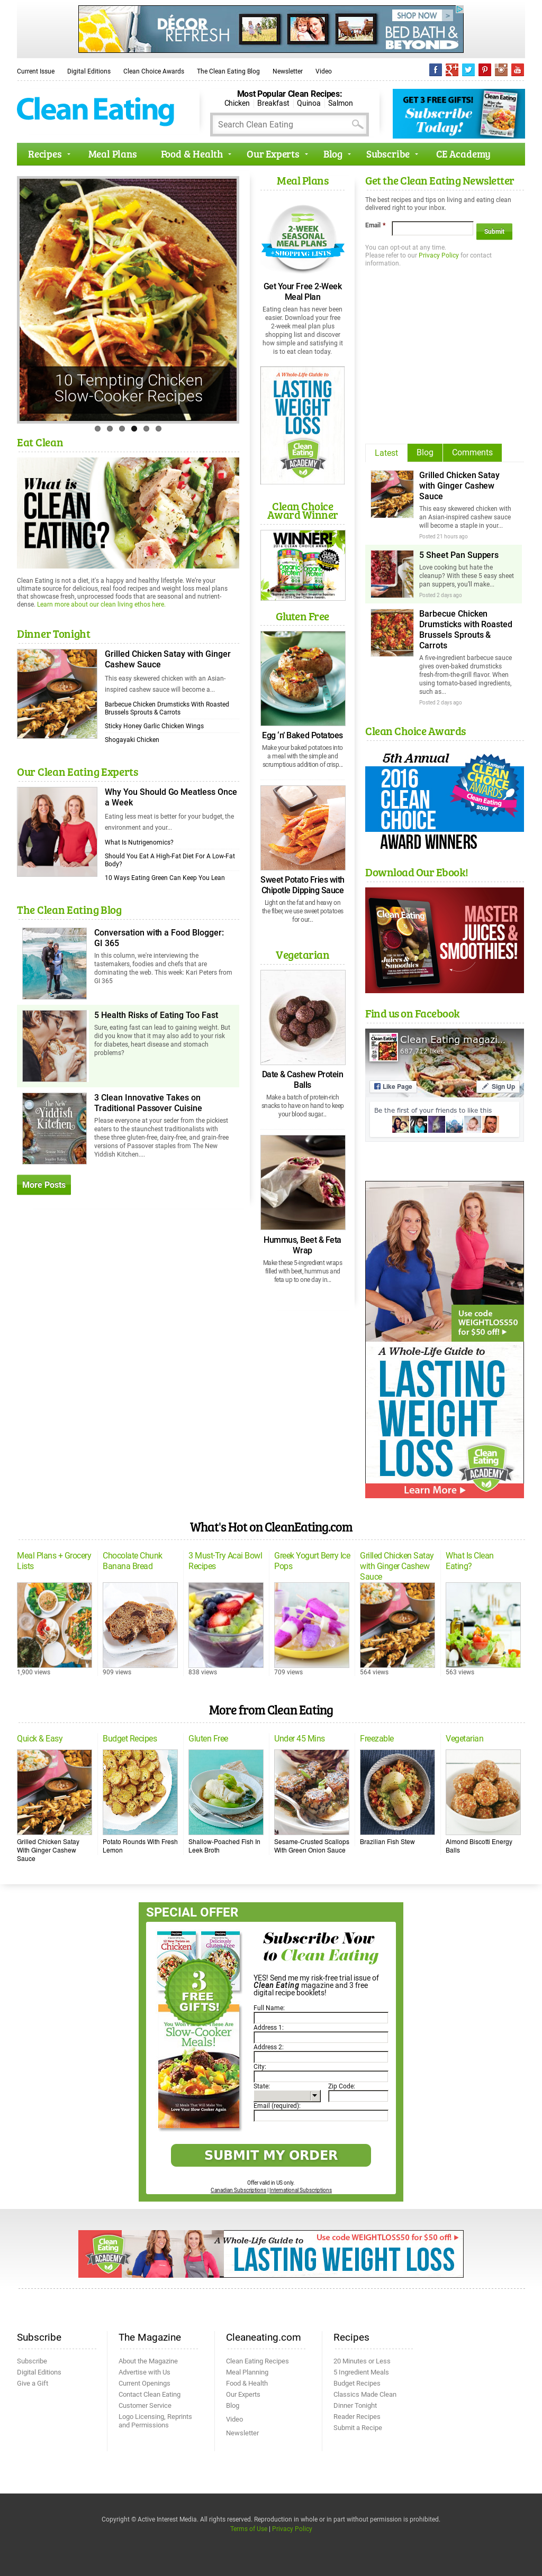 Clean Eating Magazine Competitors, Revenue and Employees